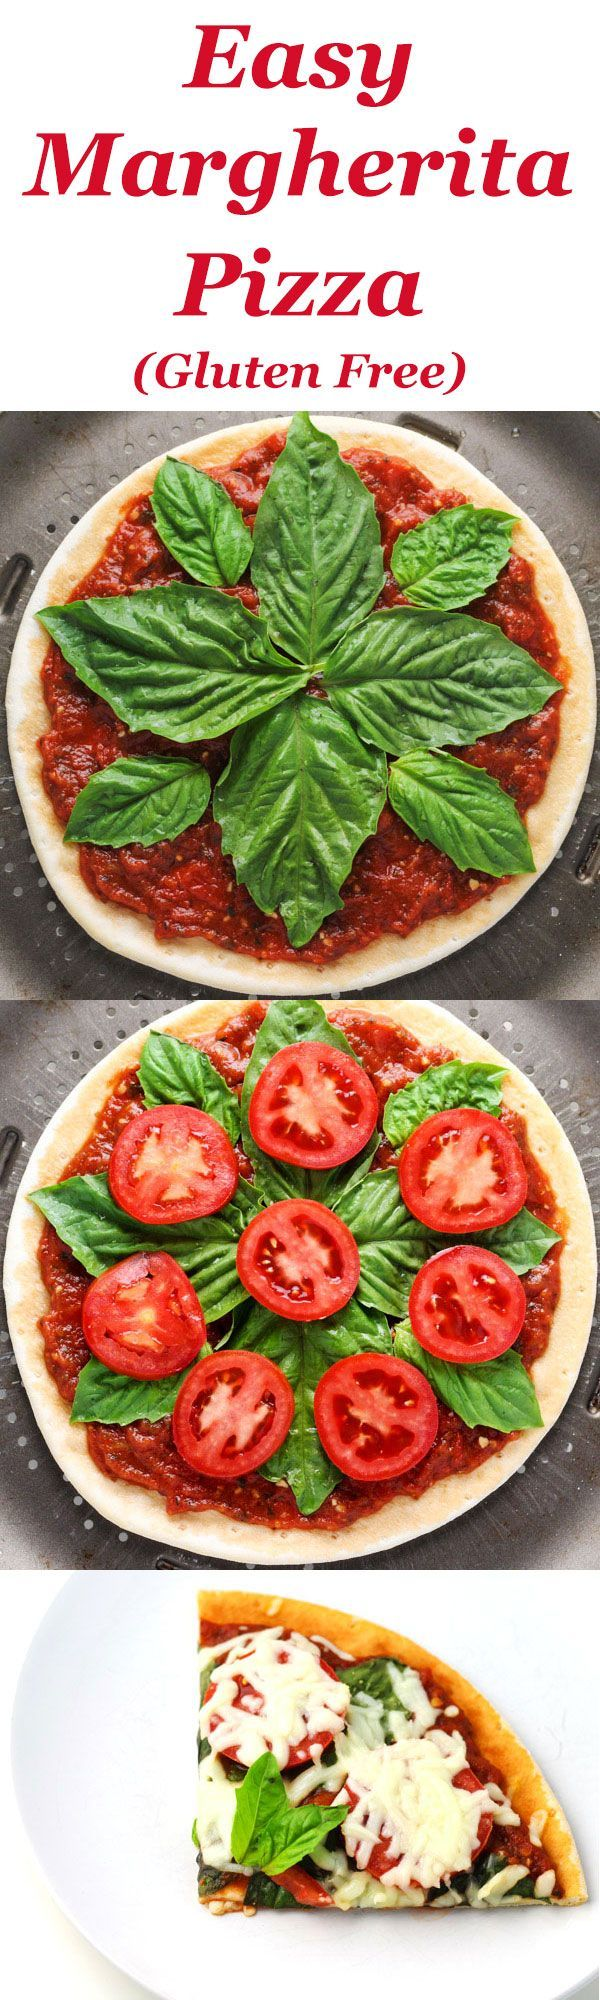 cool This Easy Margherita Pizza is Gluten Free and tastes so delicious! Only 5 ingred...